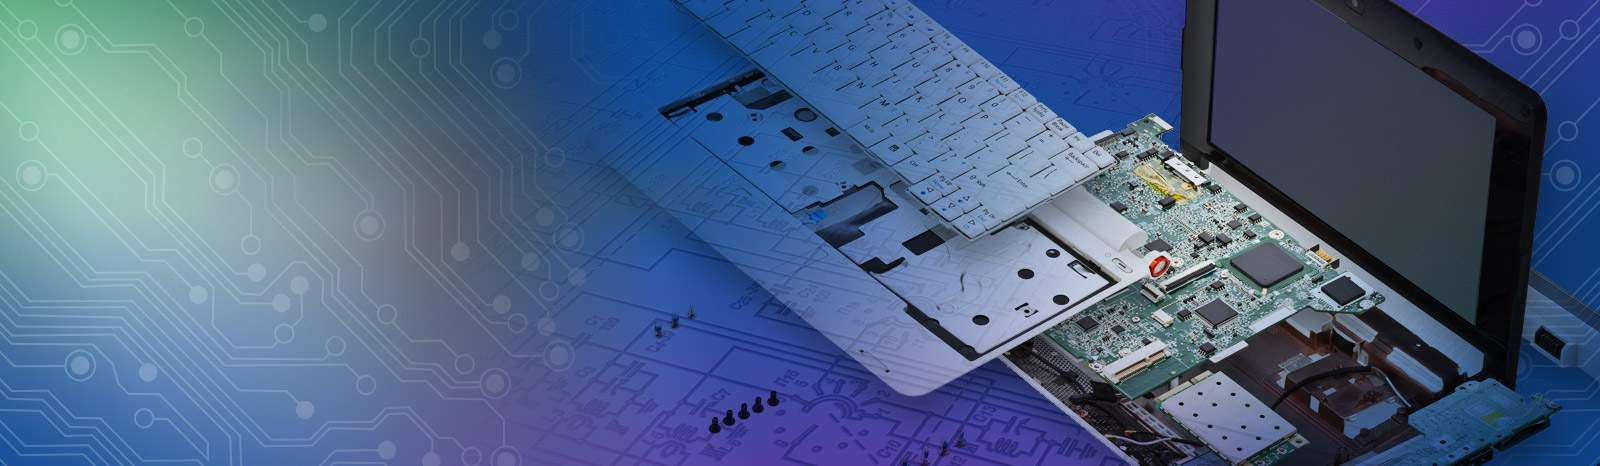 Proven Electronic Design Services